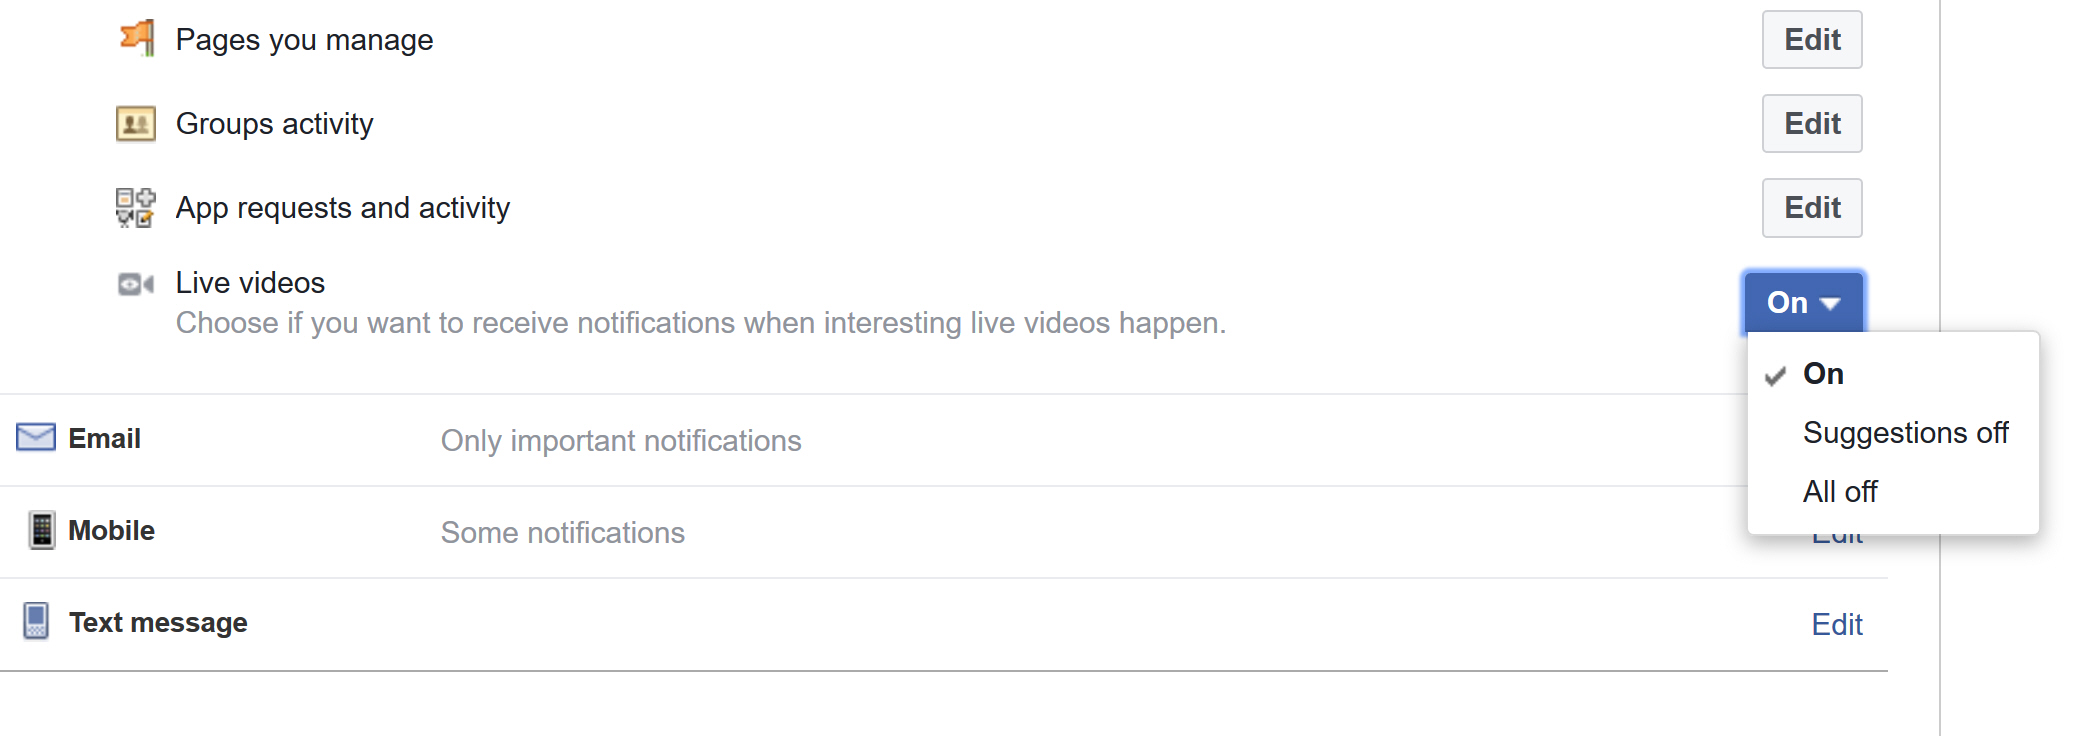 how to turn off live video on facebook